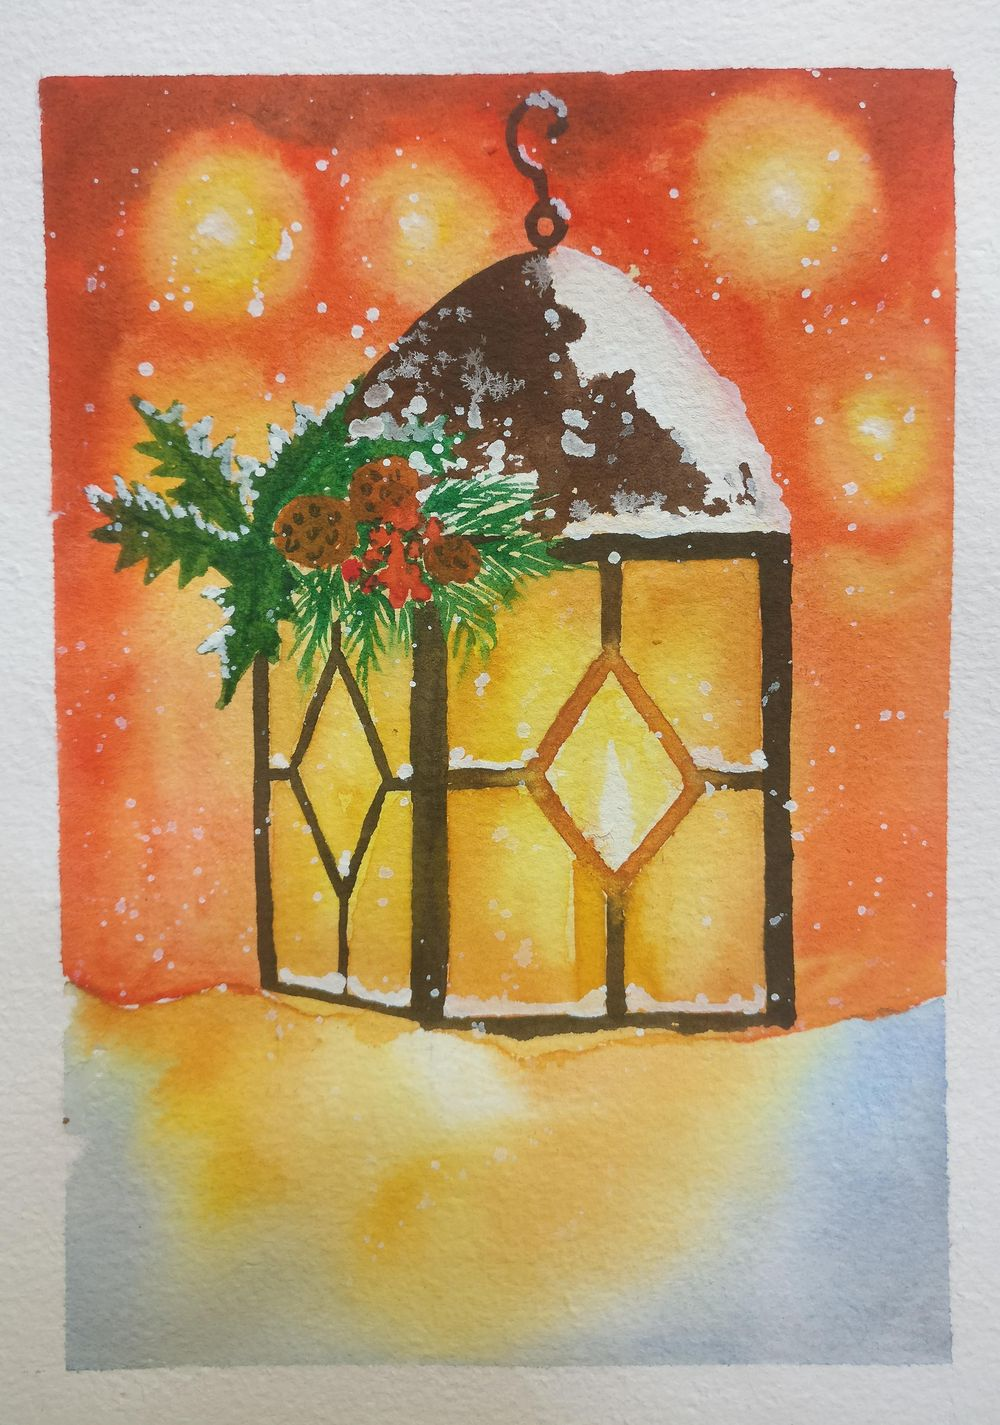 Christmas with watercolors - image 9 - student project